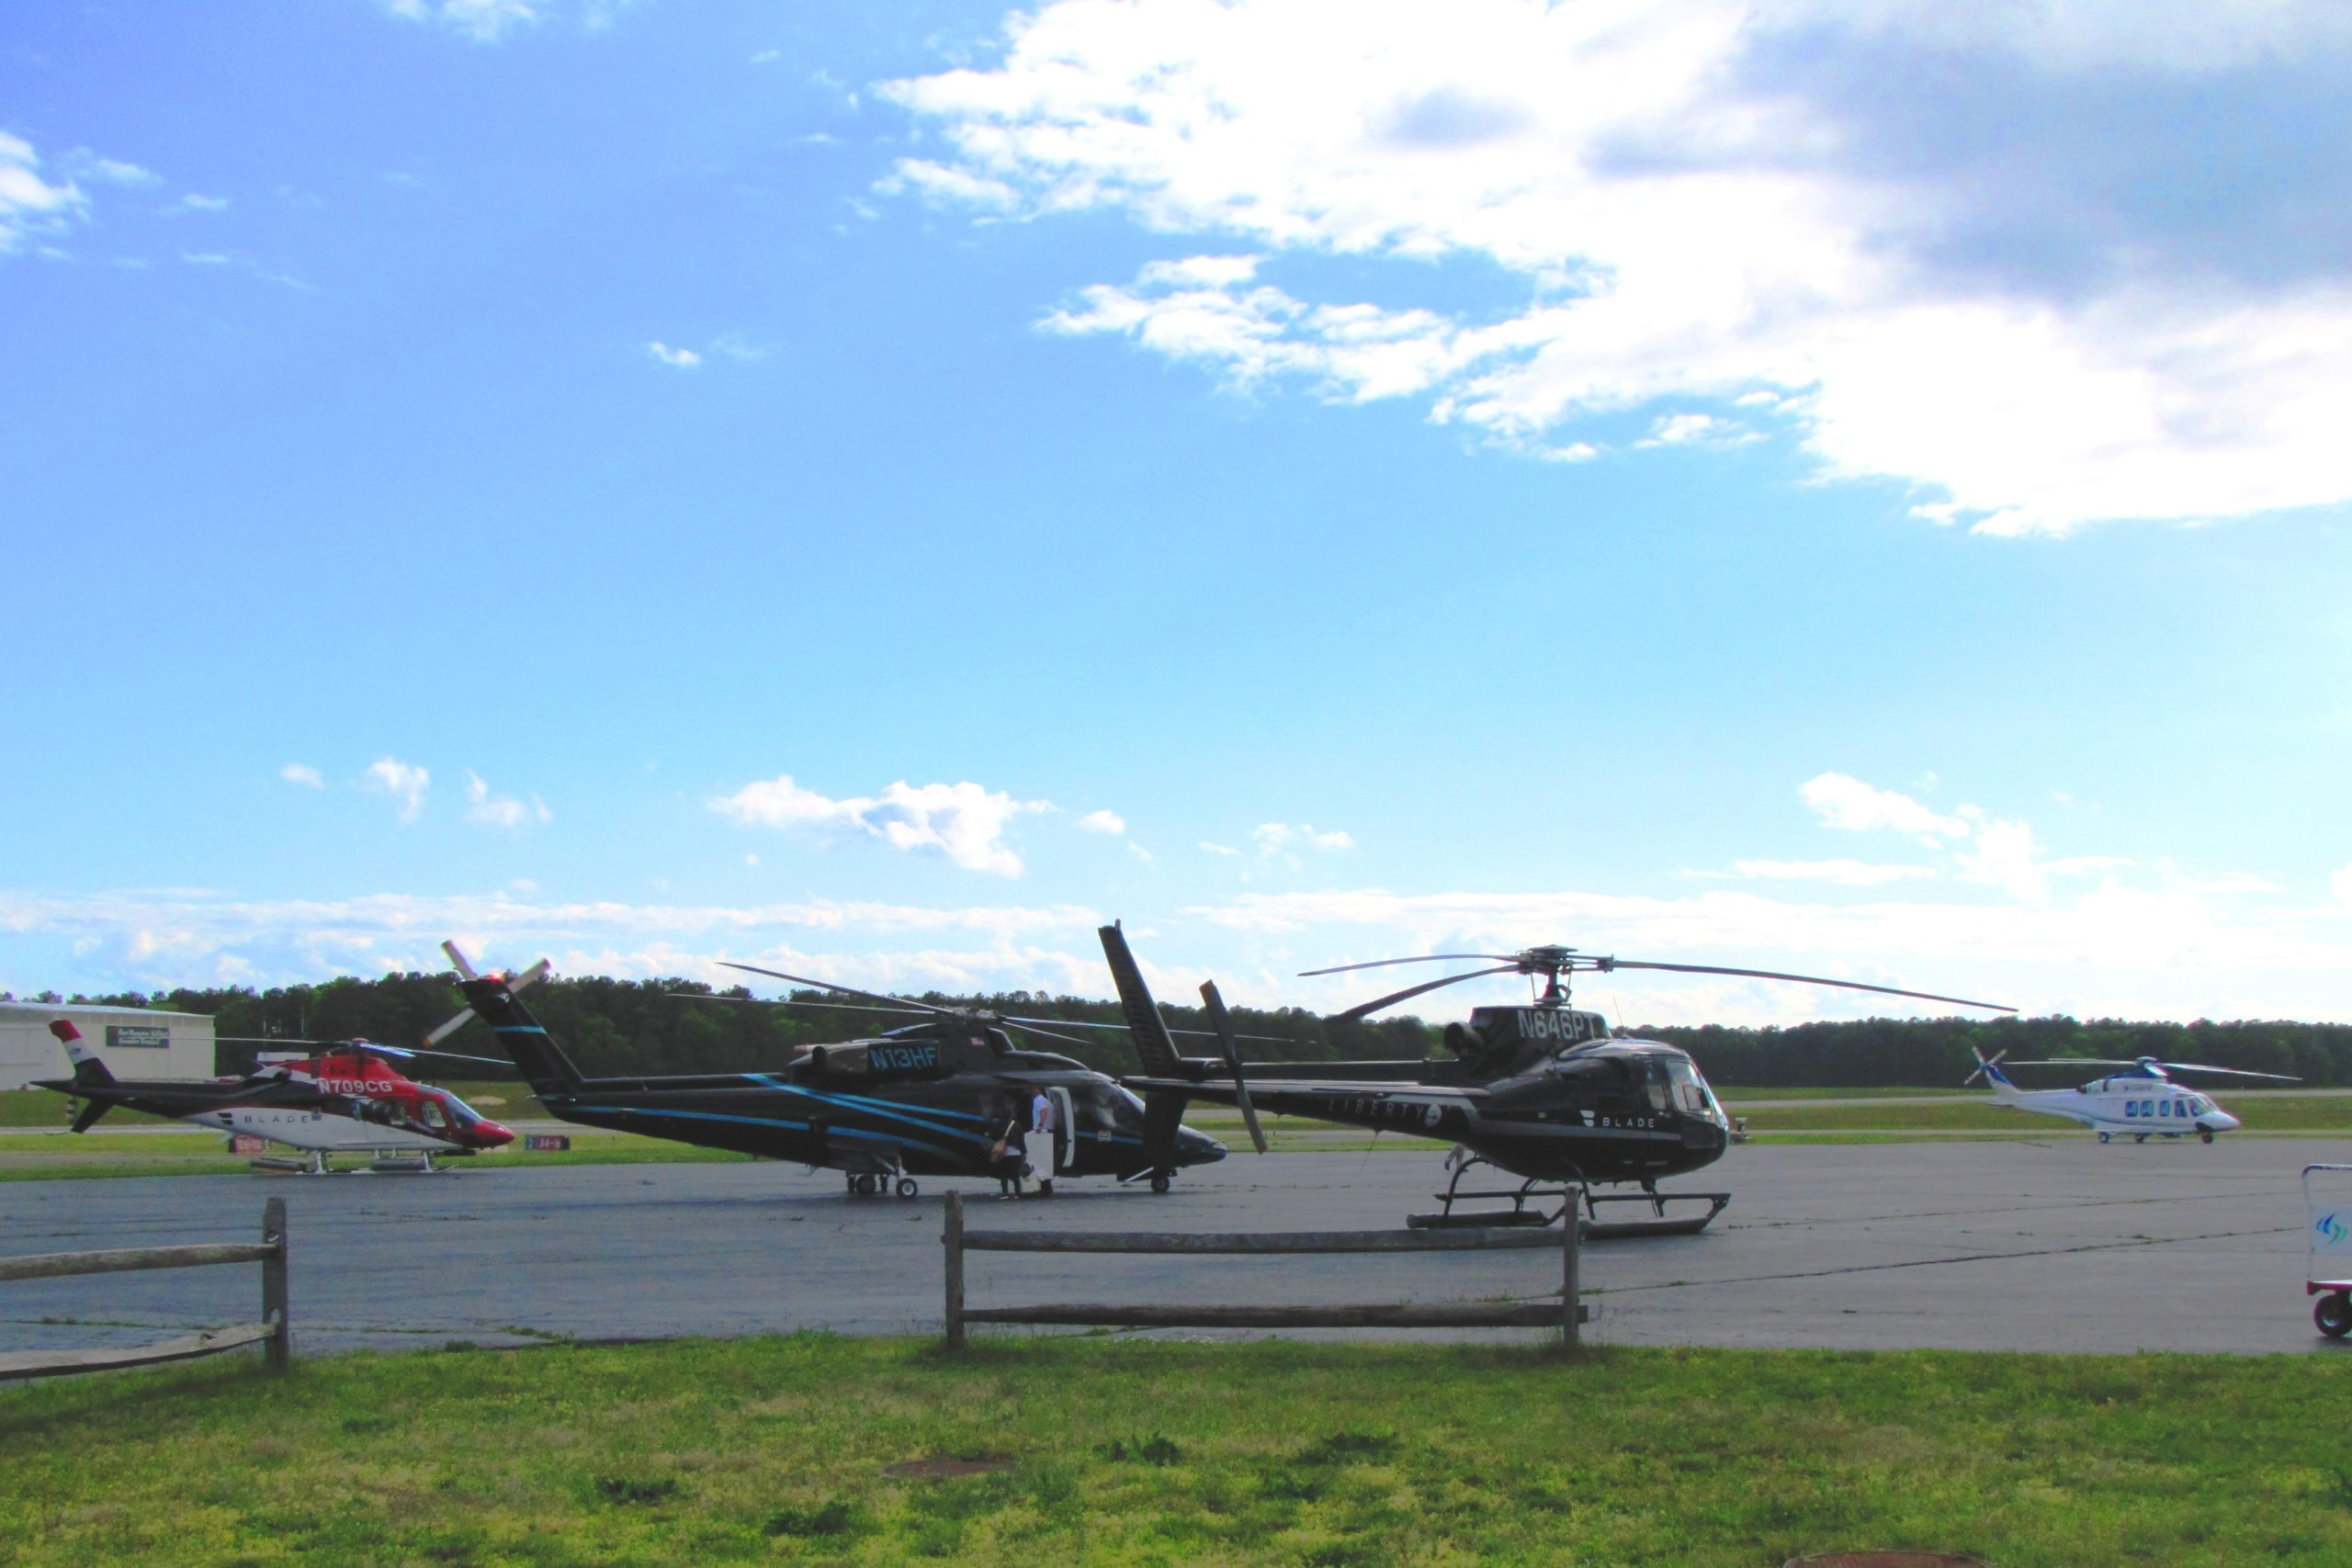 Helicopter flights into East Hampton Airport have swollen steadily in the last 20 years and sparked a debate about whether the airport should be closed, which will be the focus of the January 30 Press Sessions event.